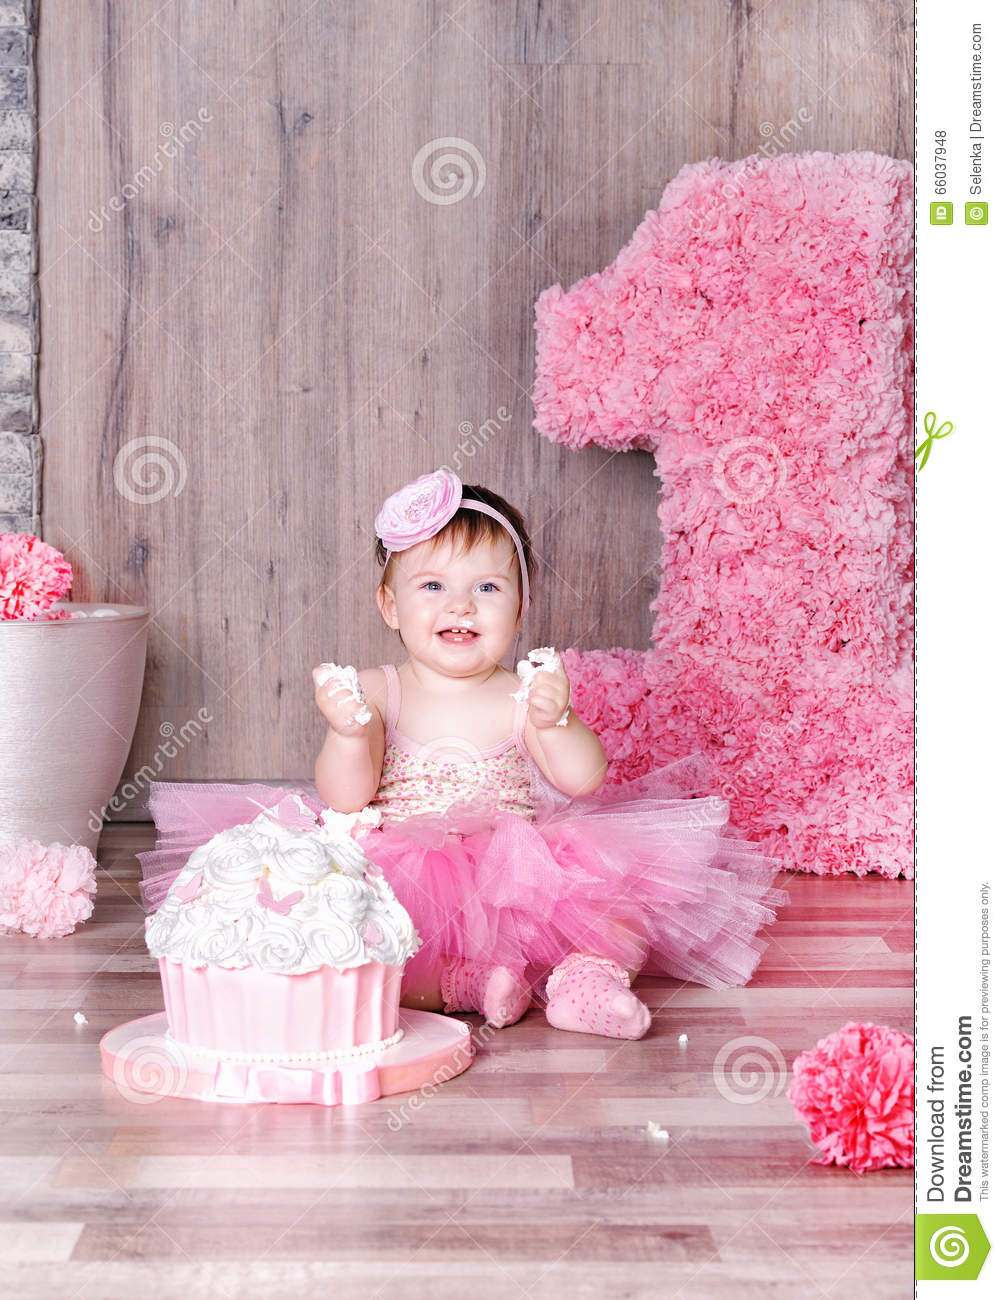 Cute Baby Girl Eating First Birthday Cake Stock Photo 66037948